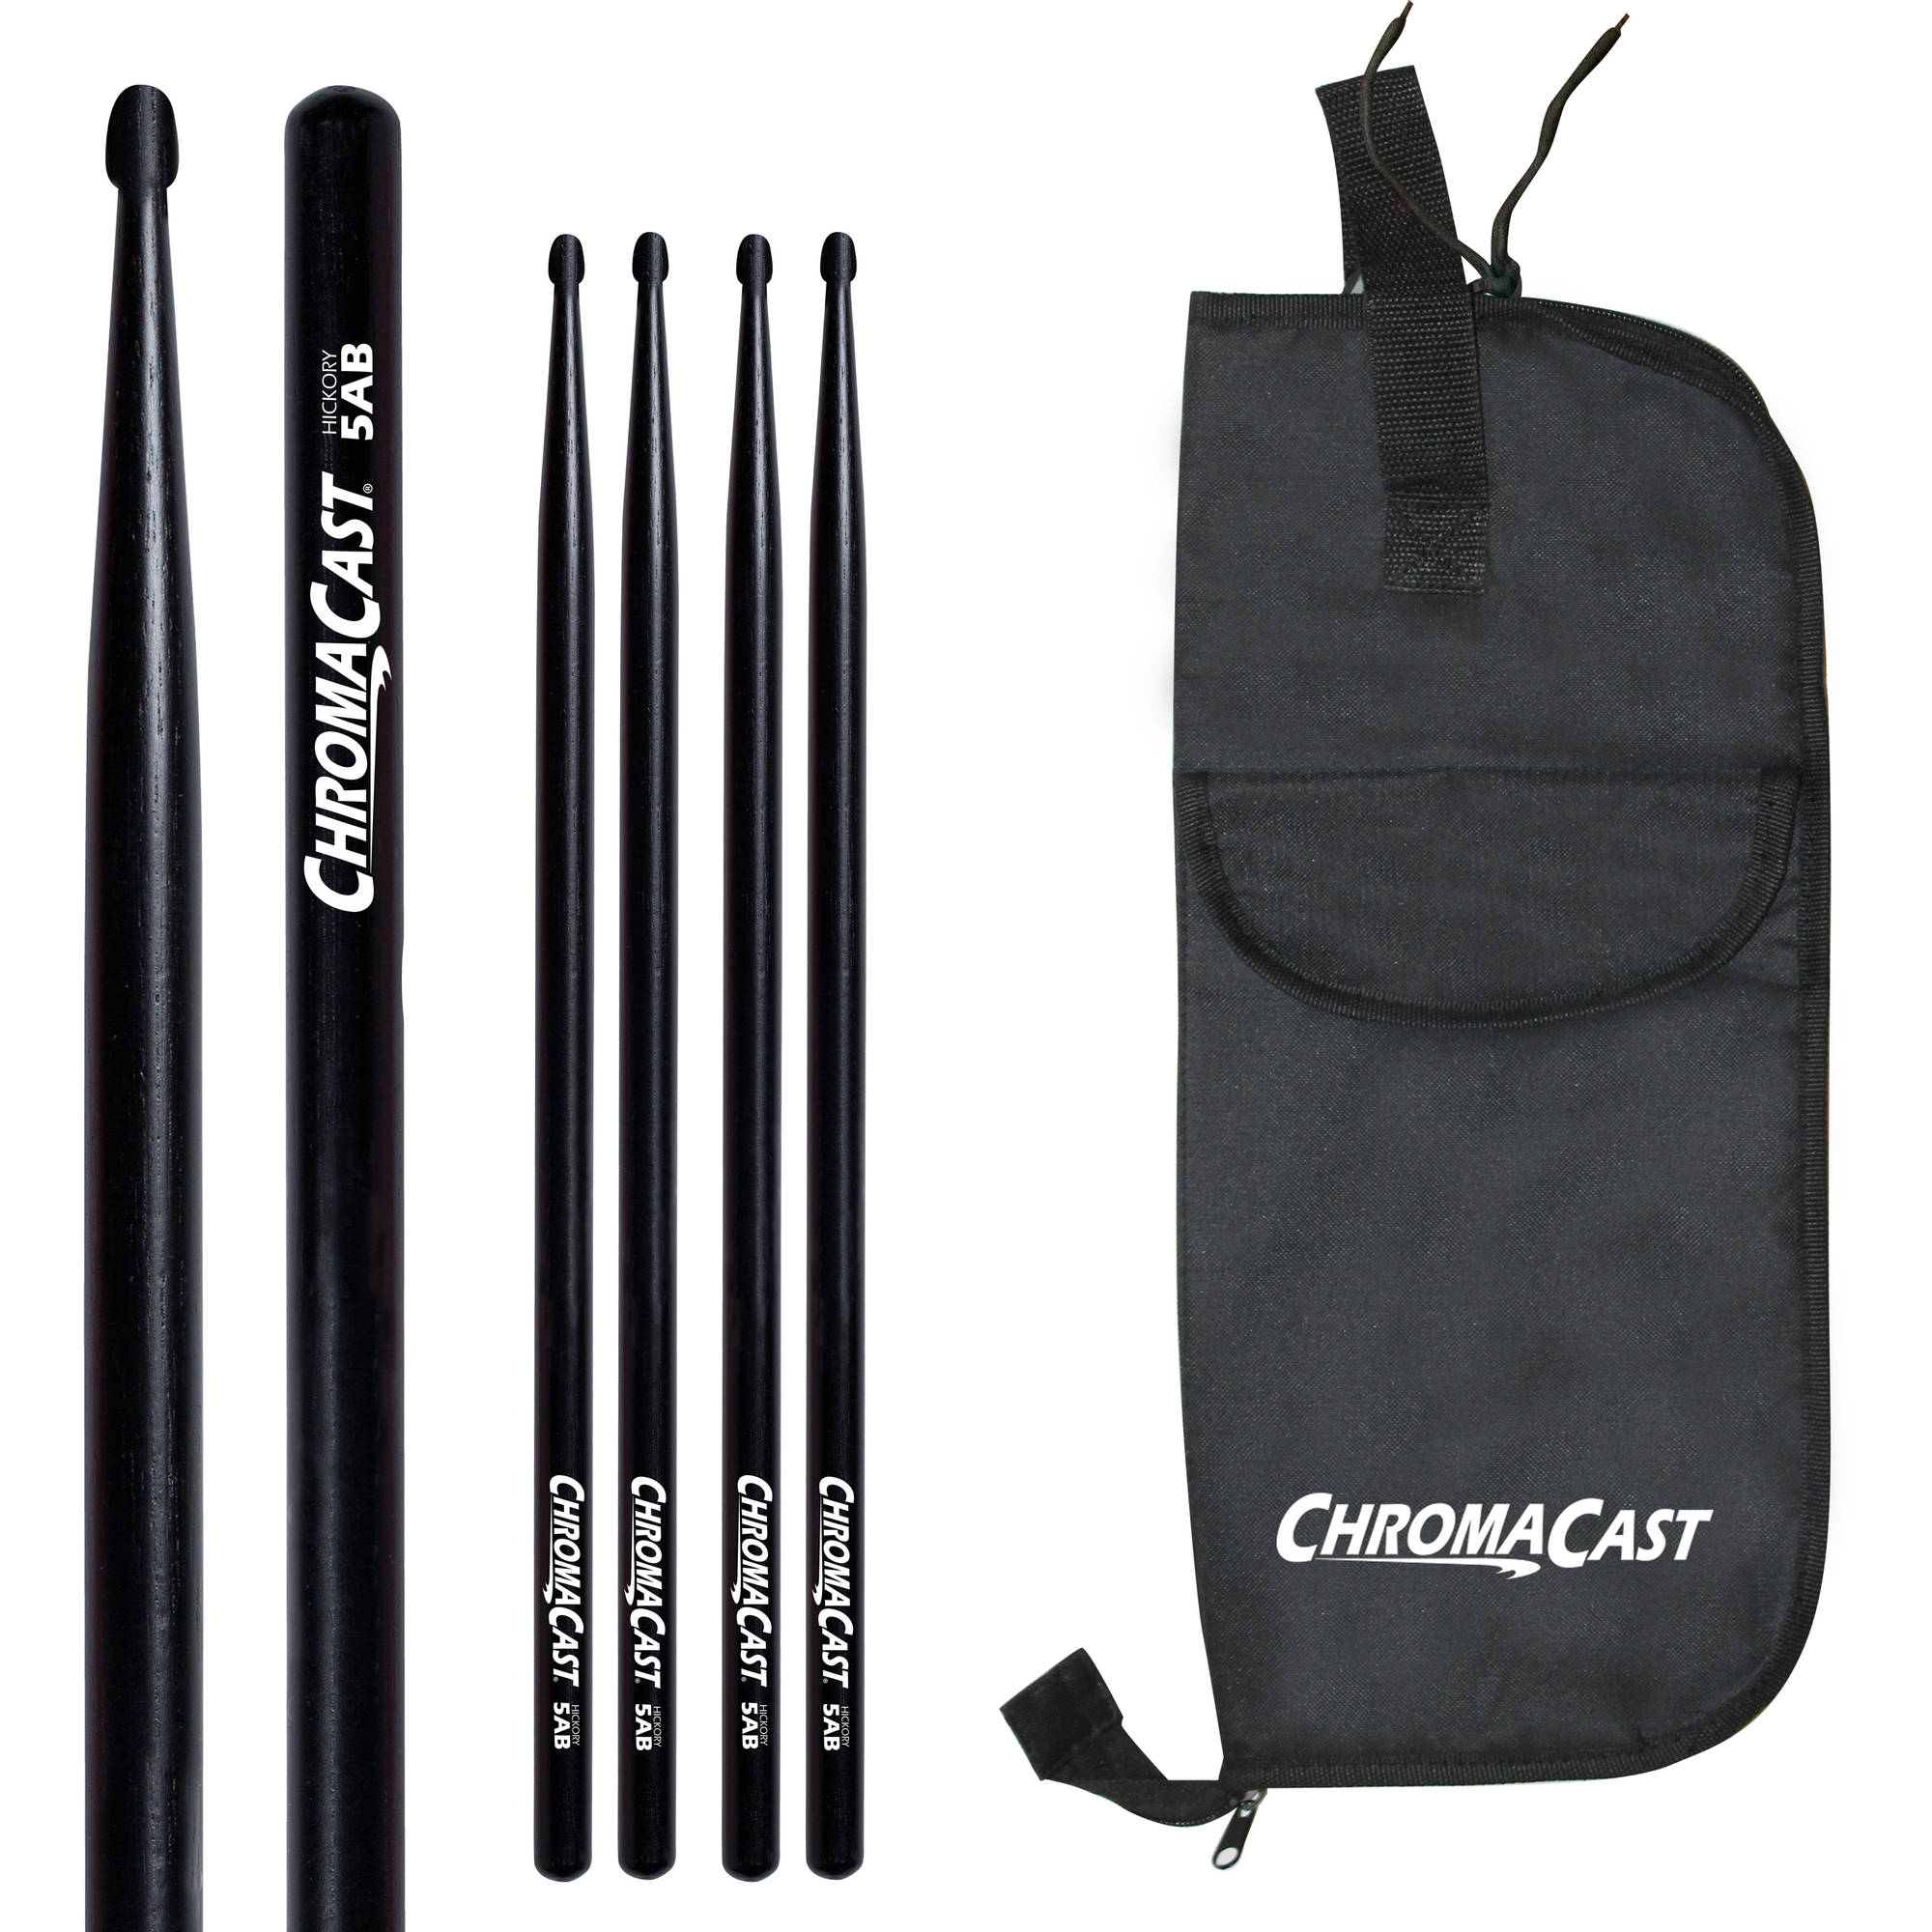 ChromaCast 5A Black Hickory Drumsticks, 3 Pairs with Drumstick Bag